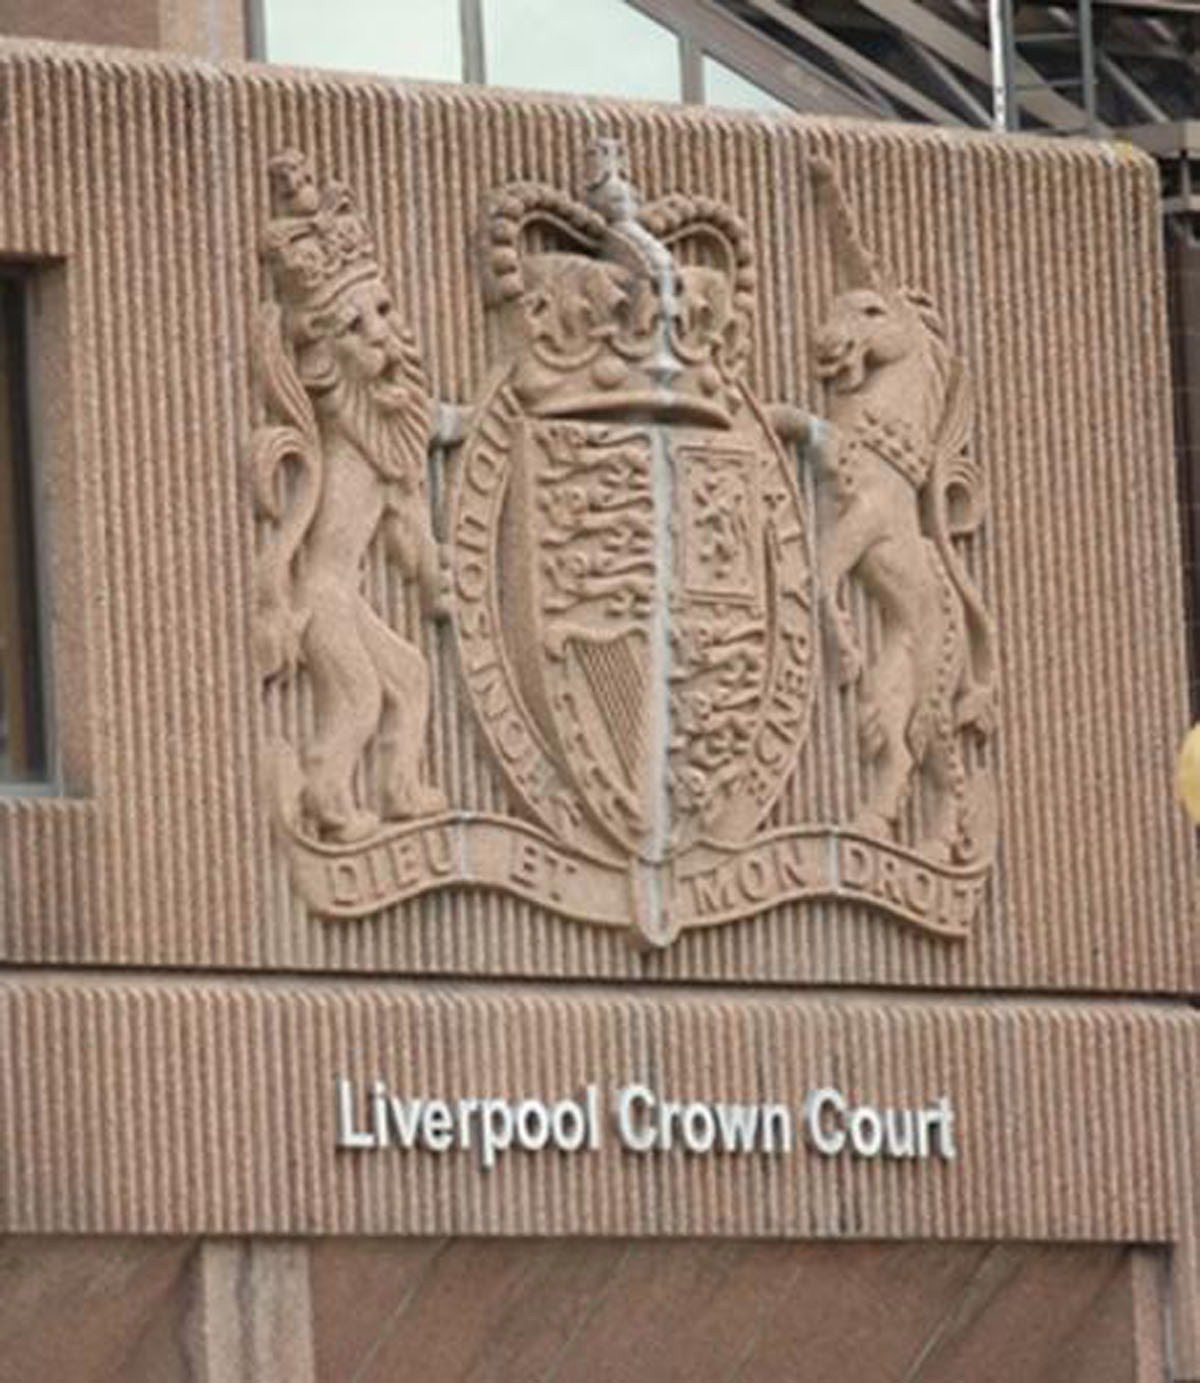 Liverpool Crown Court heard how Thomas Goble was embarrassed and remorseful over the incident last September